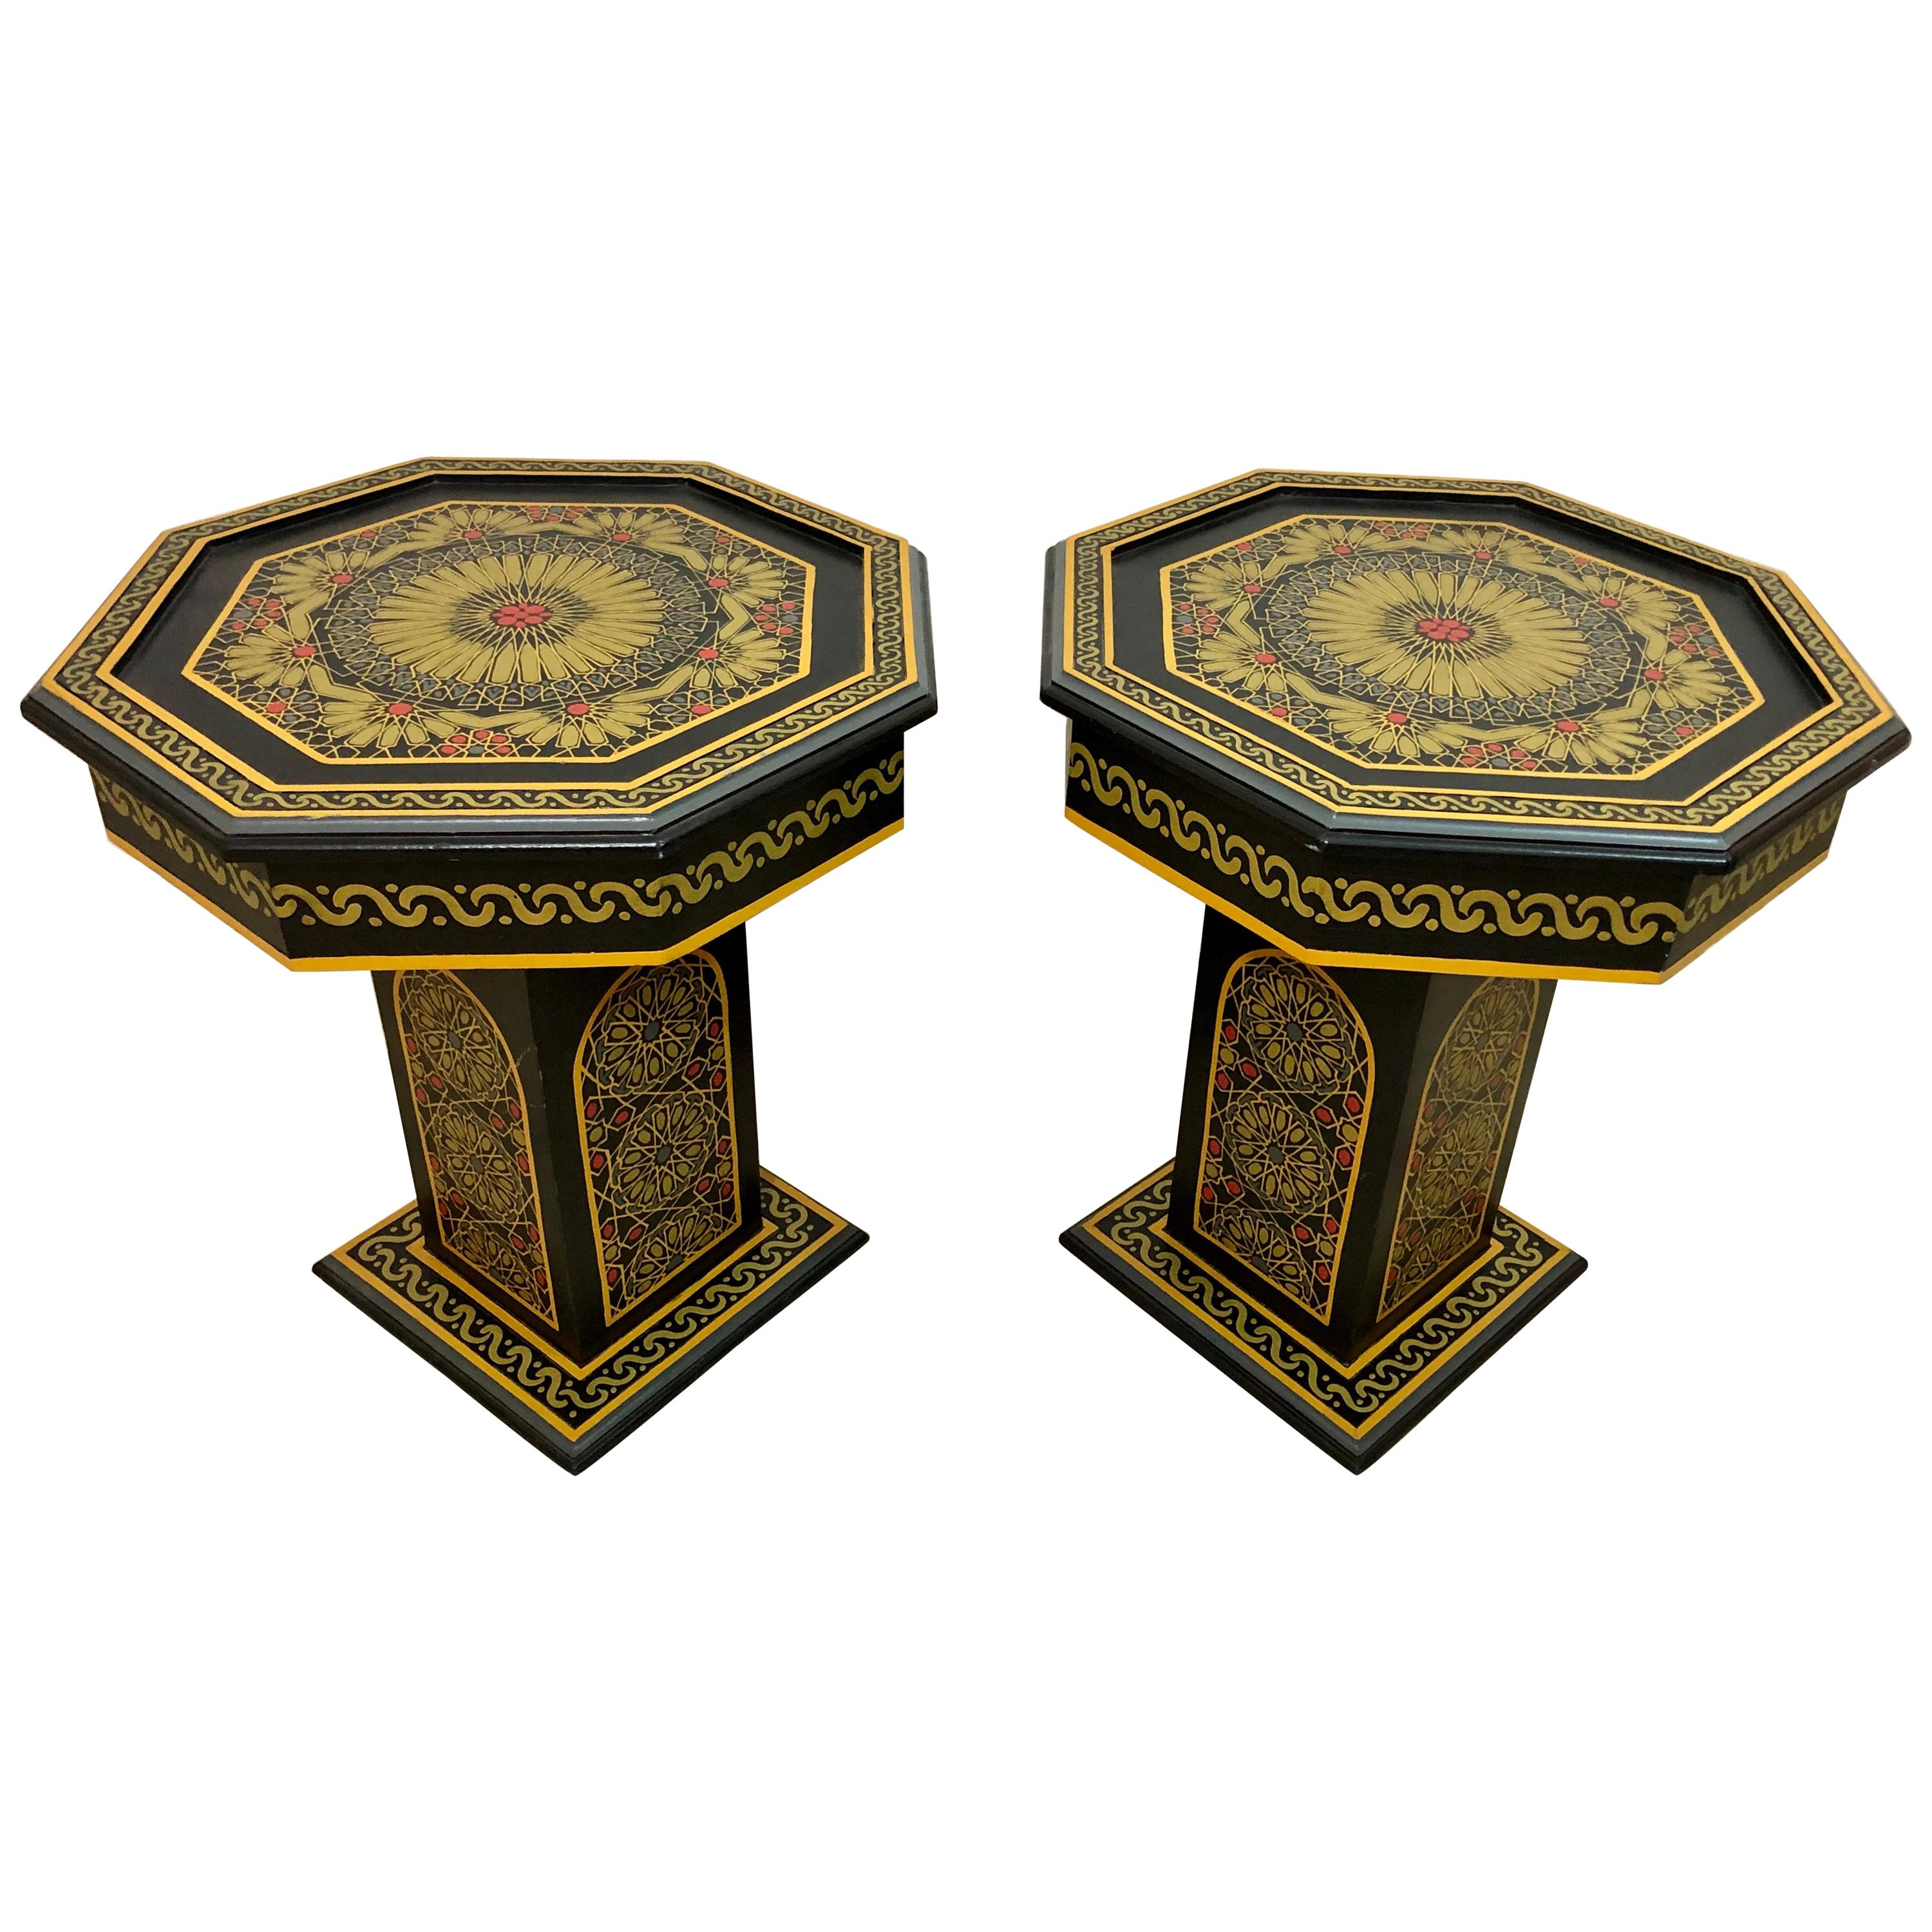 Moroccan End, Side or Lamp Tables Hand Painted in Black and Gold, a Pair